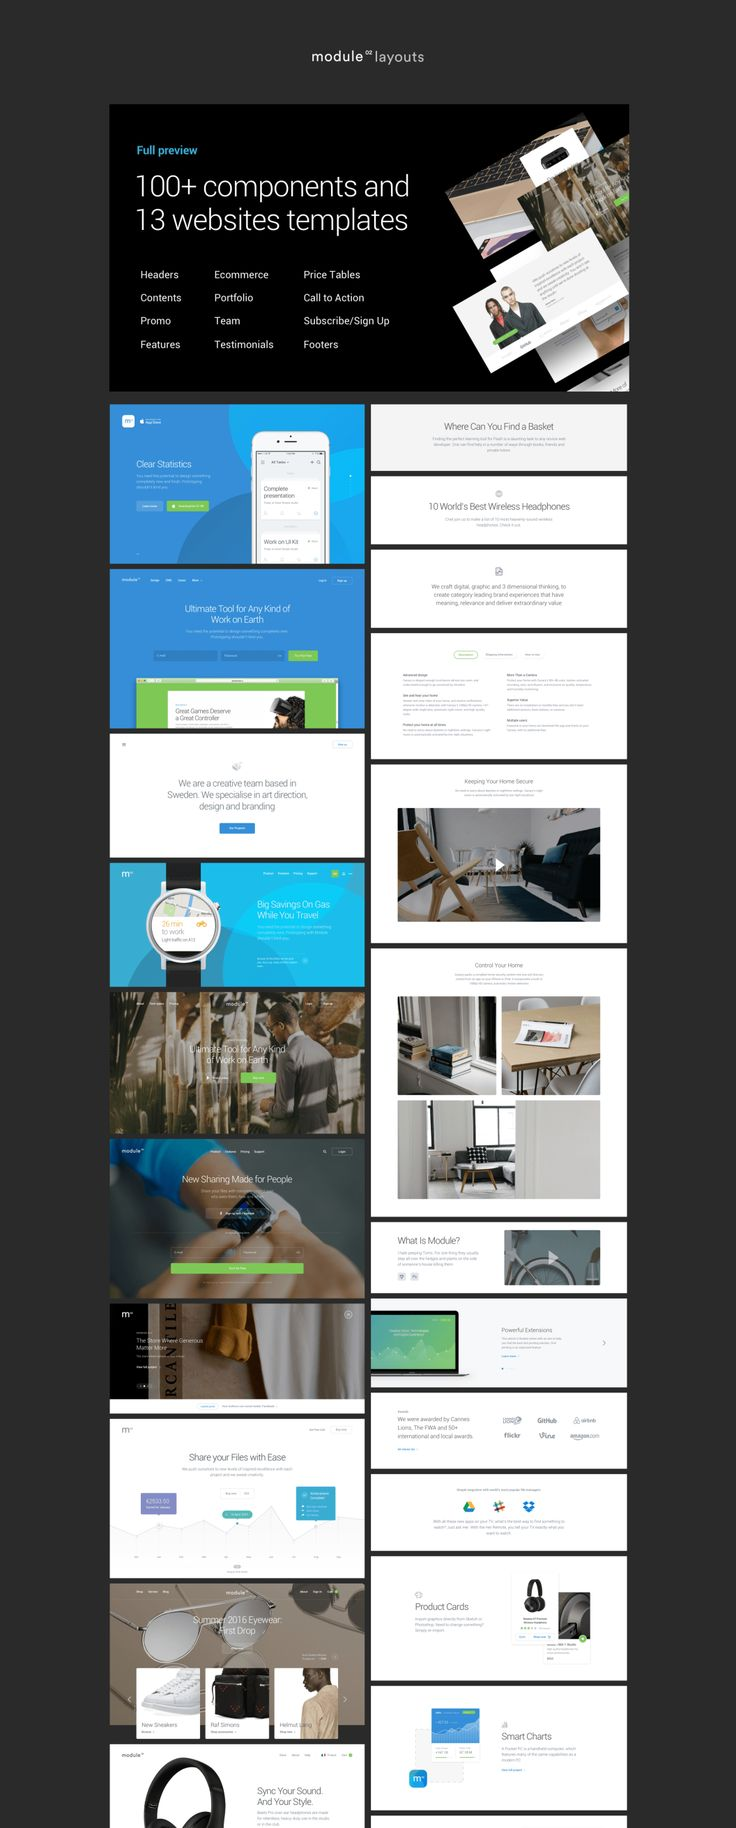 Module 02: Layouts is a kit contains more than 100 elaborate components in 12 categories and 13 web site templates. Each is fully customizable, exceptionally easy to use and carefully assembled in Sketch and Photoshop formats.